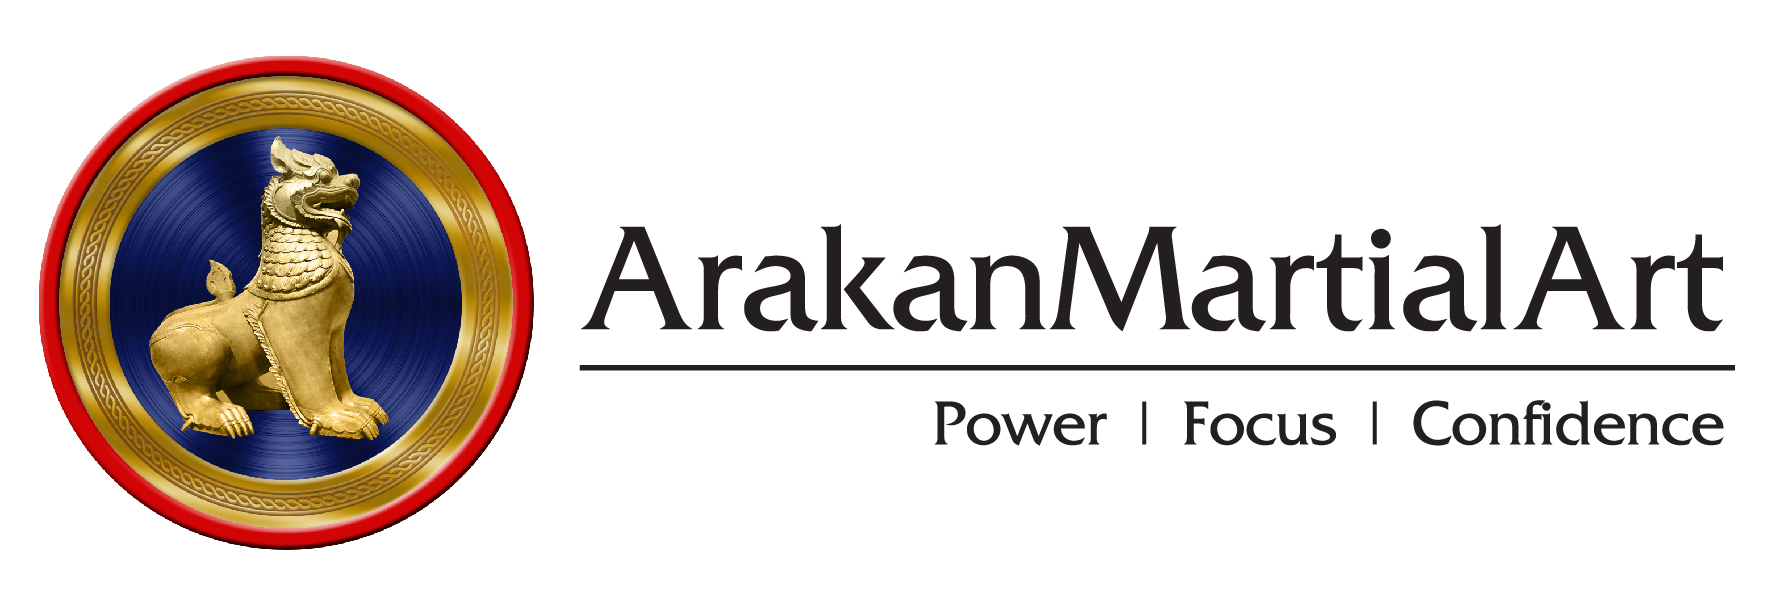 Arakan Martial Art